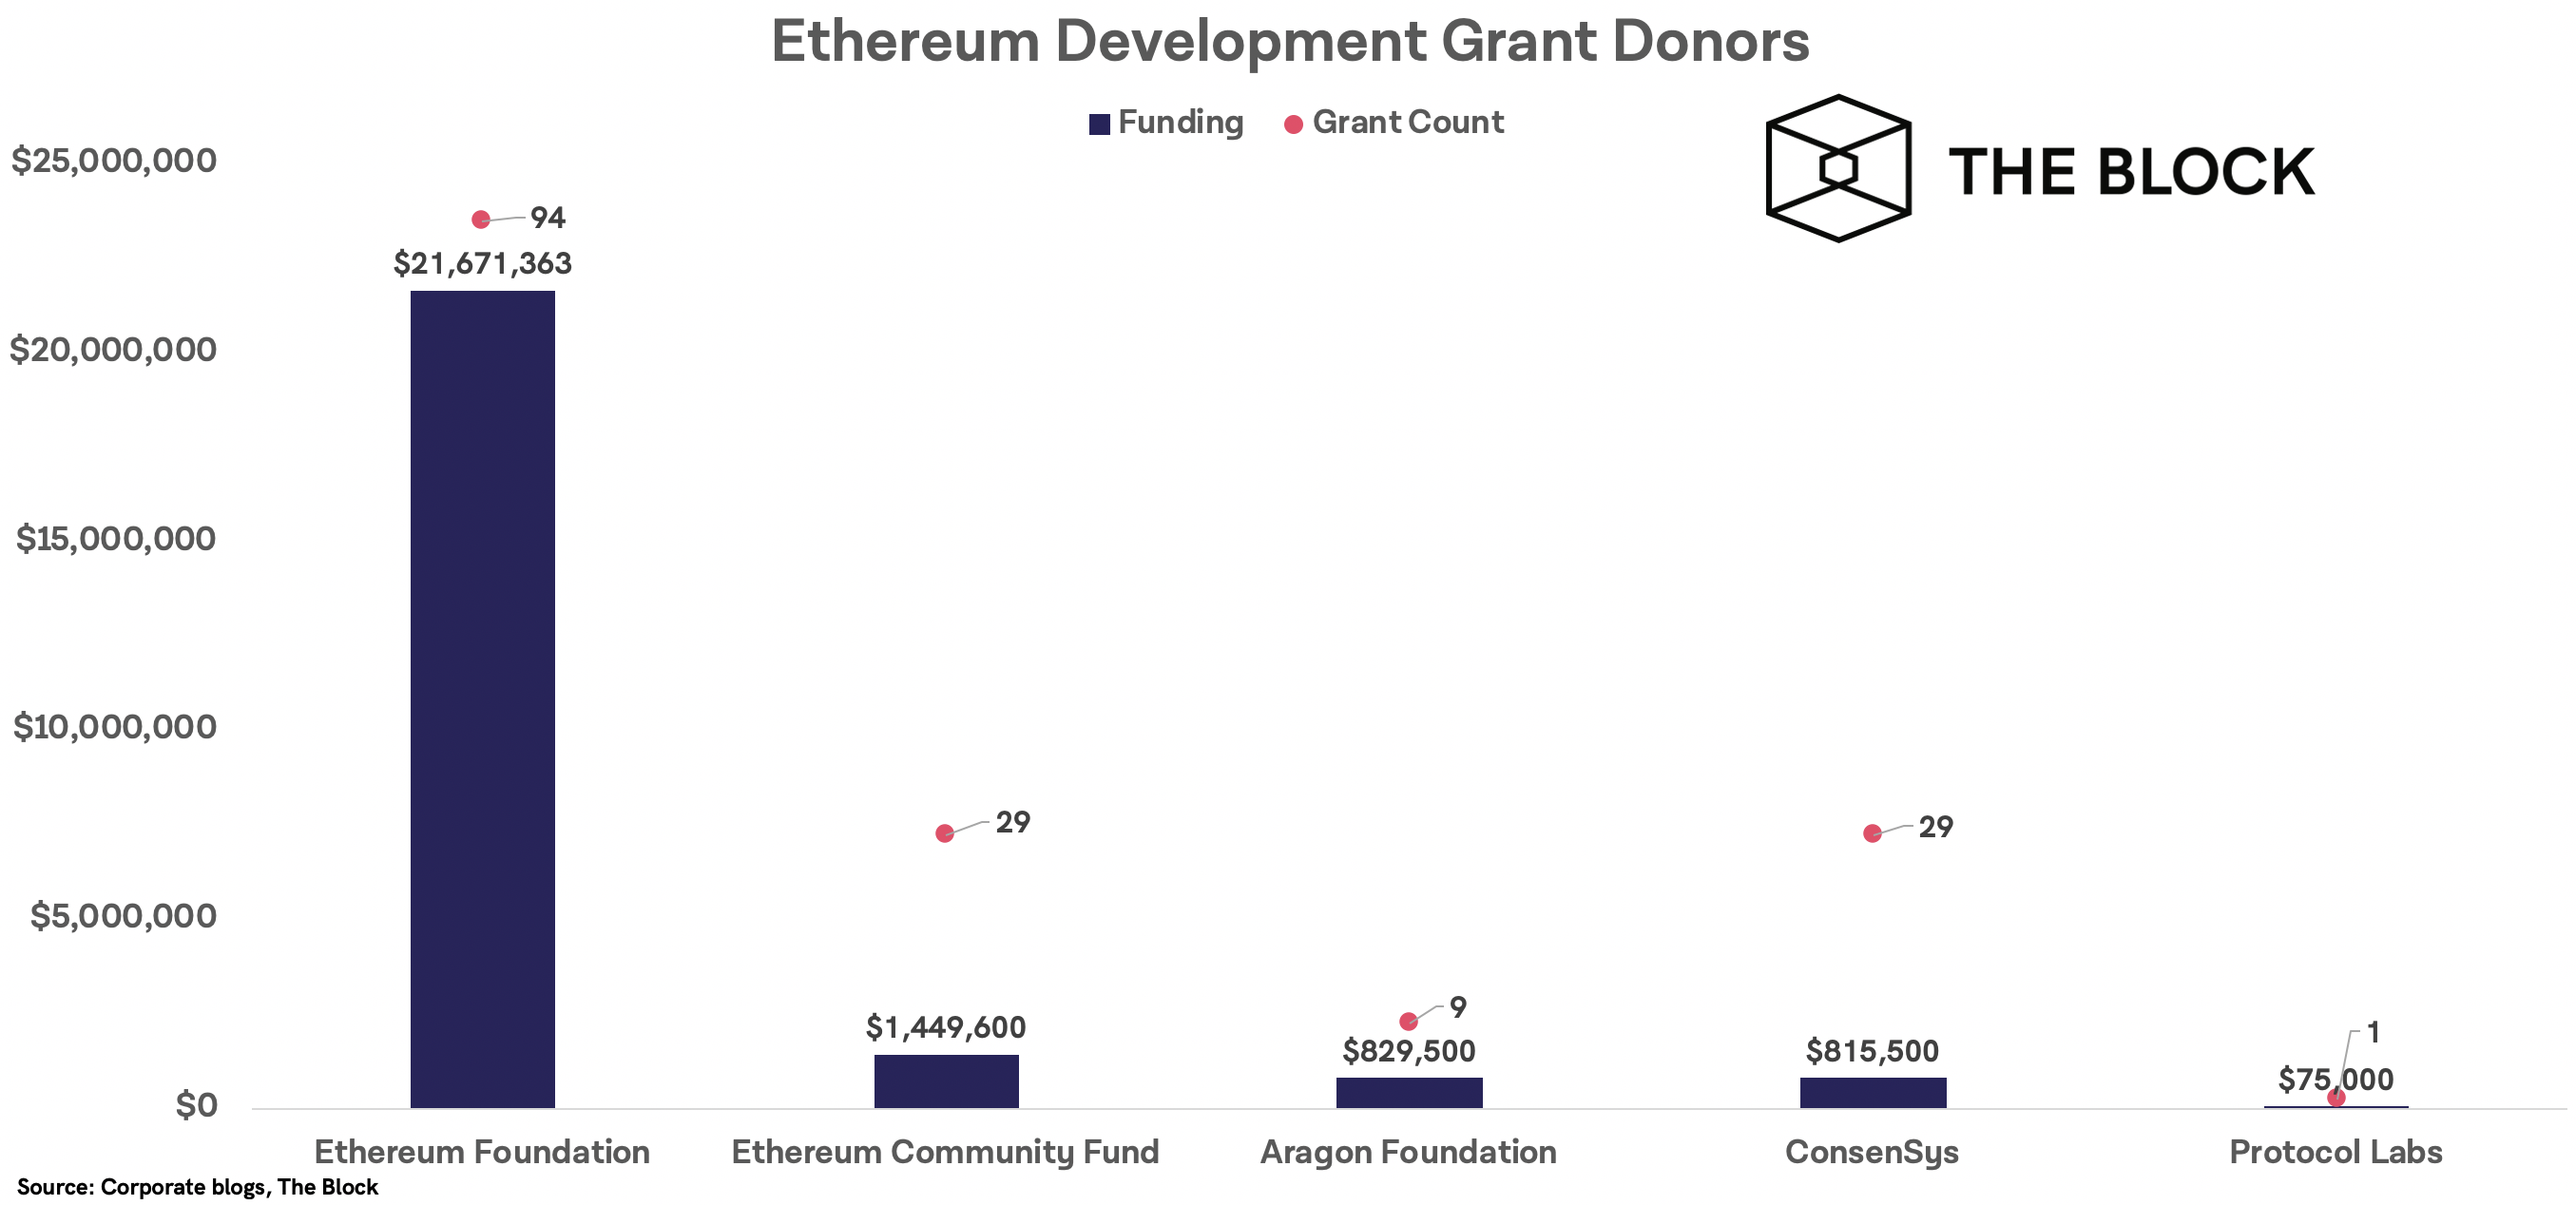 030520_eth_funding.png